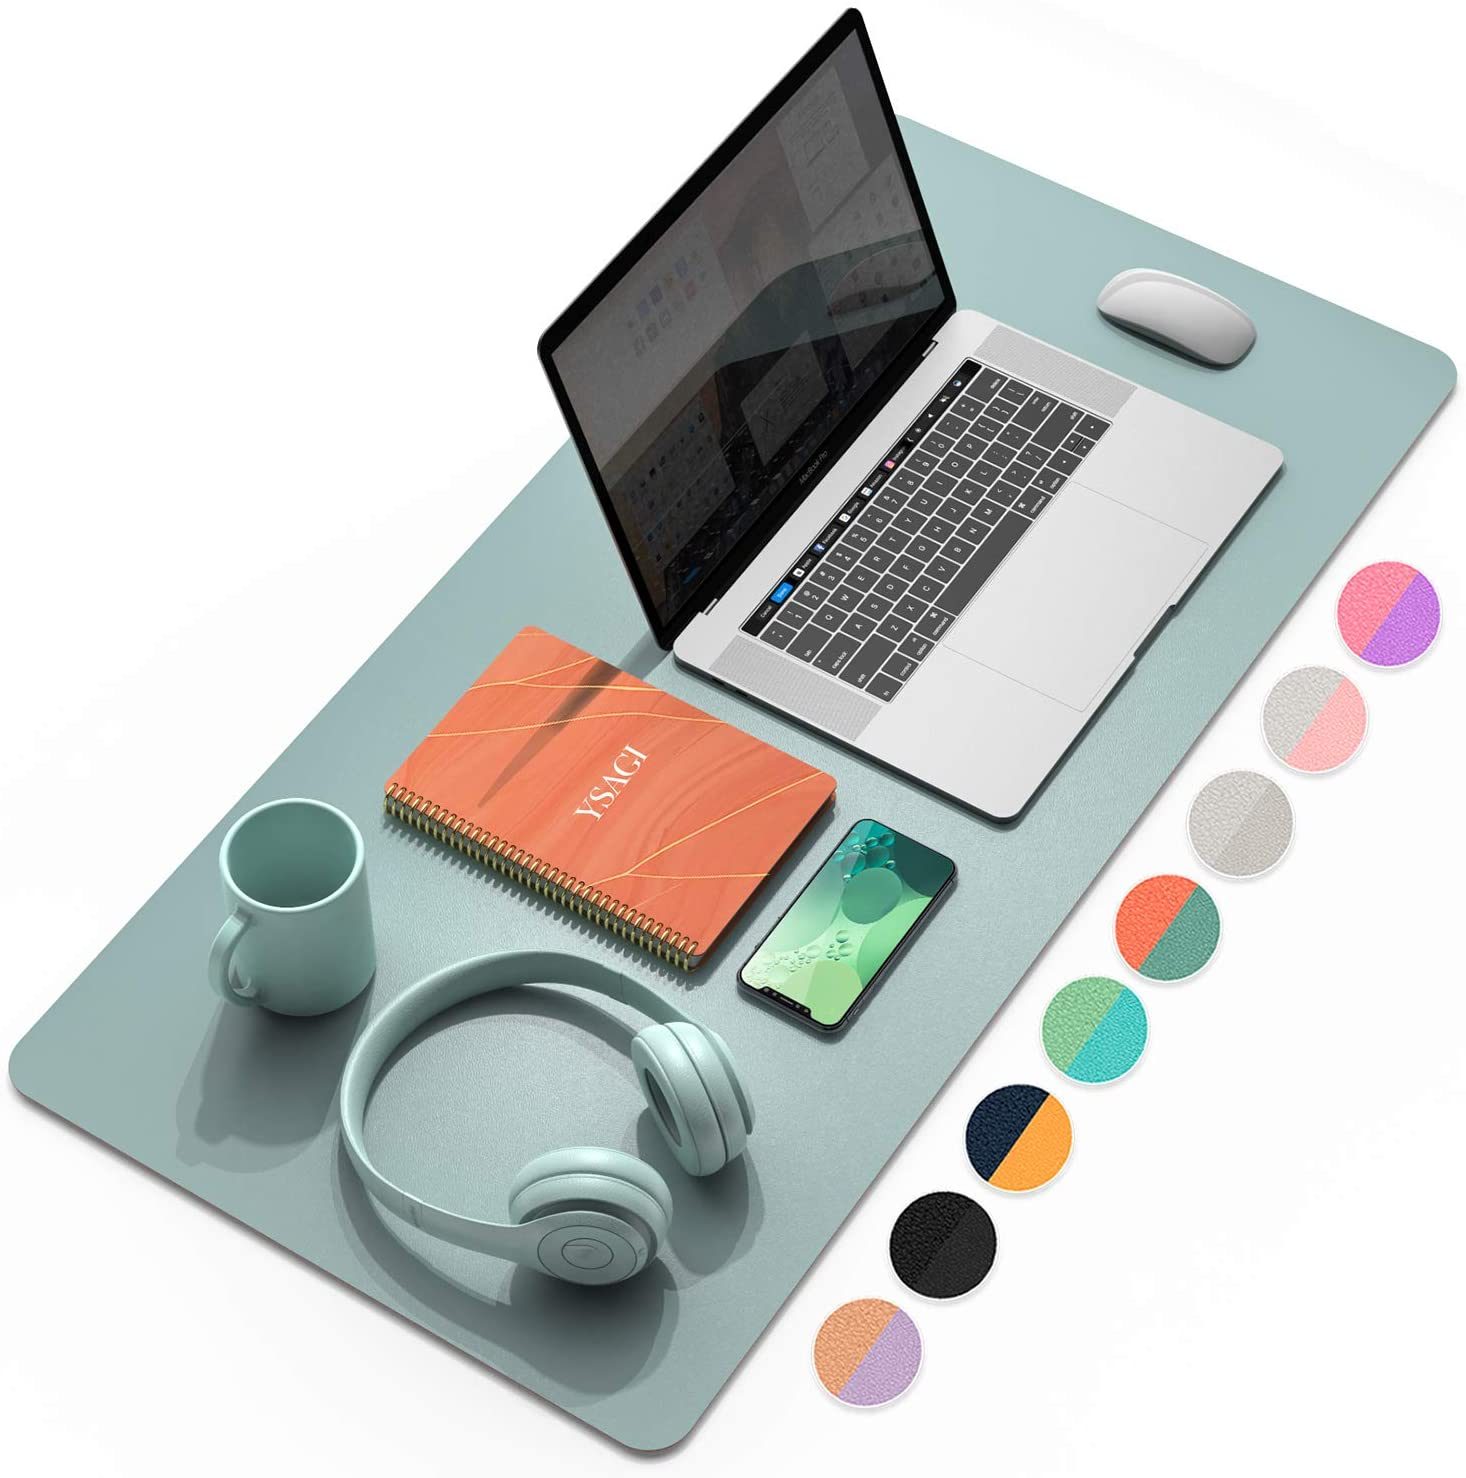 """YSAGi Multifunctional Office Desk Pad, Ultra Thin Waterproof PU Leather Mouse Pad, Dual Use Desk Writing Mat for Office/Home (31.5"""" x 15.7"""", Glaucous Green+Orange)"""